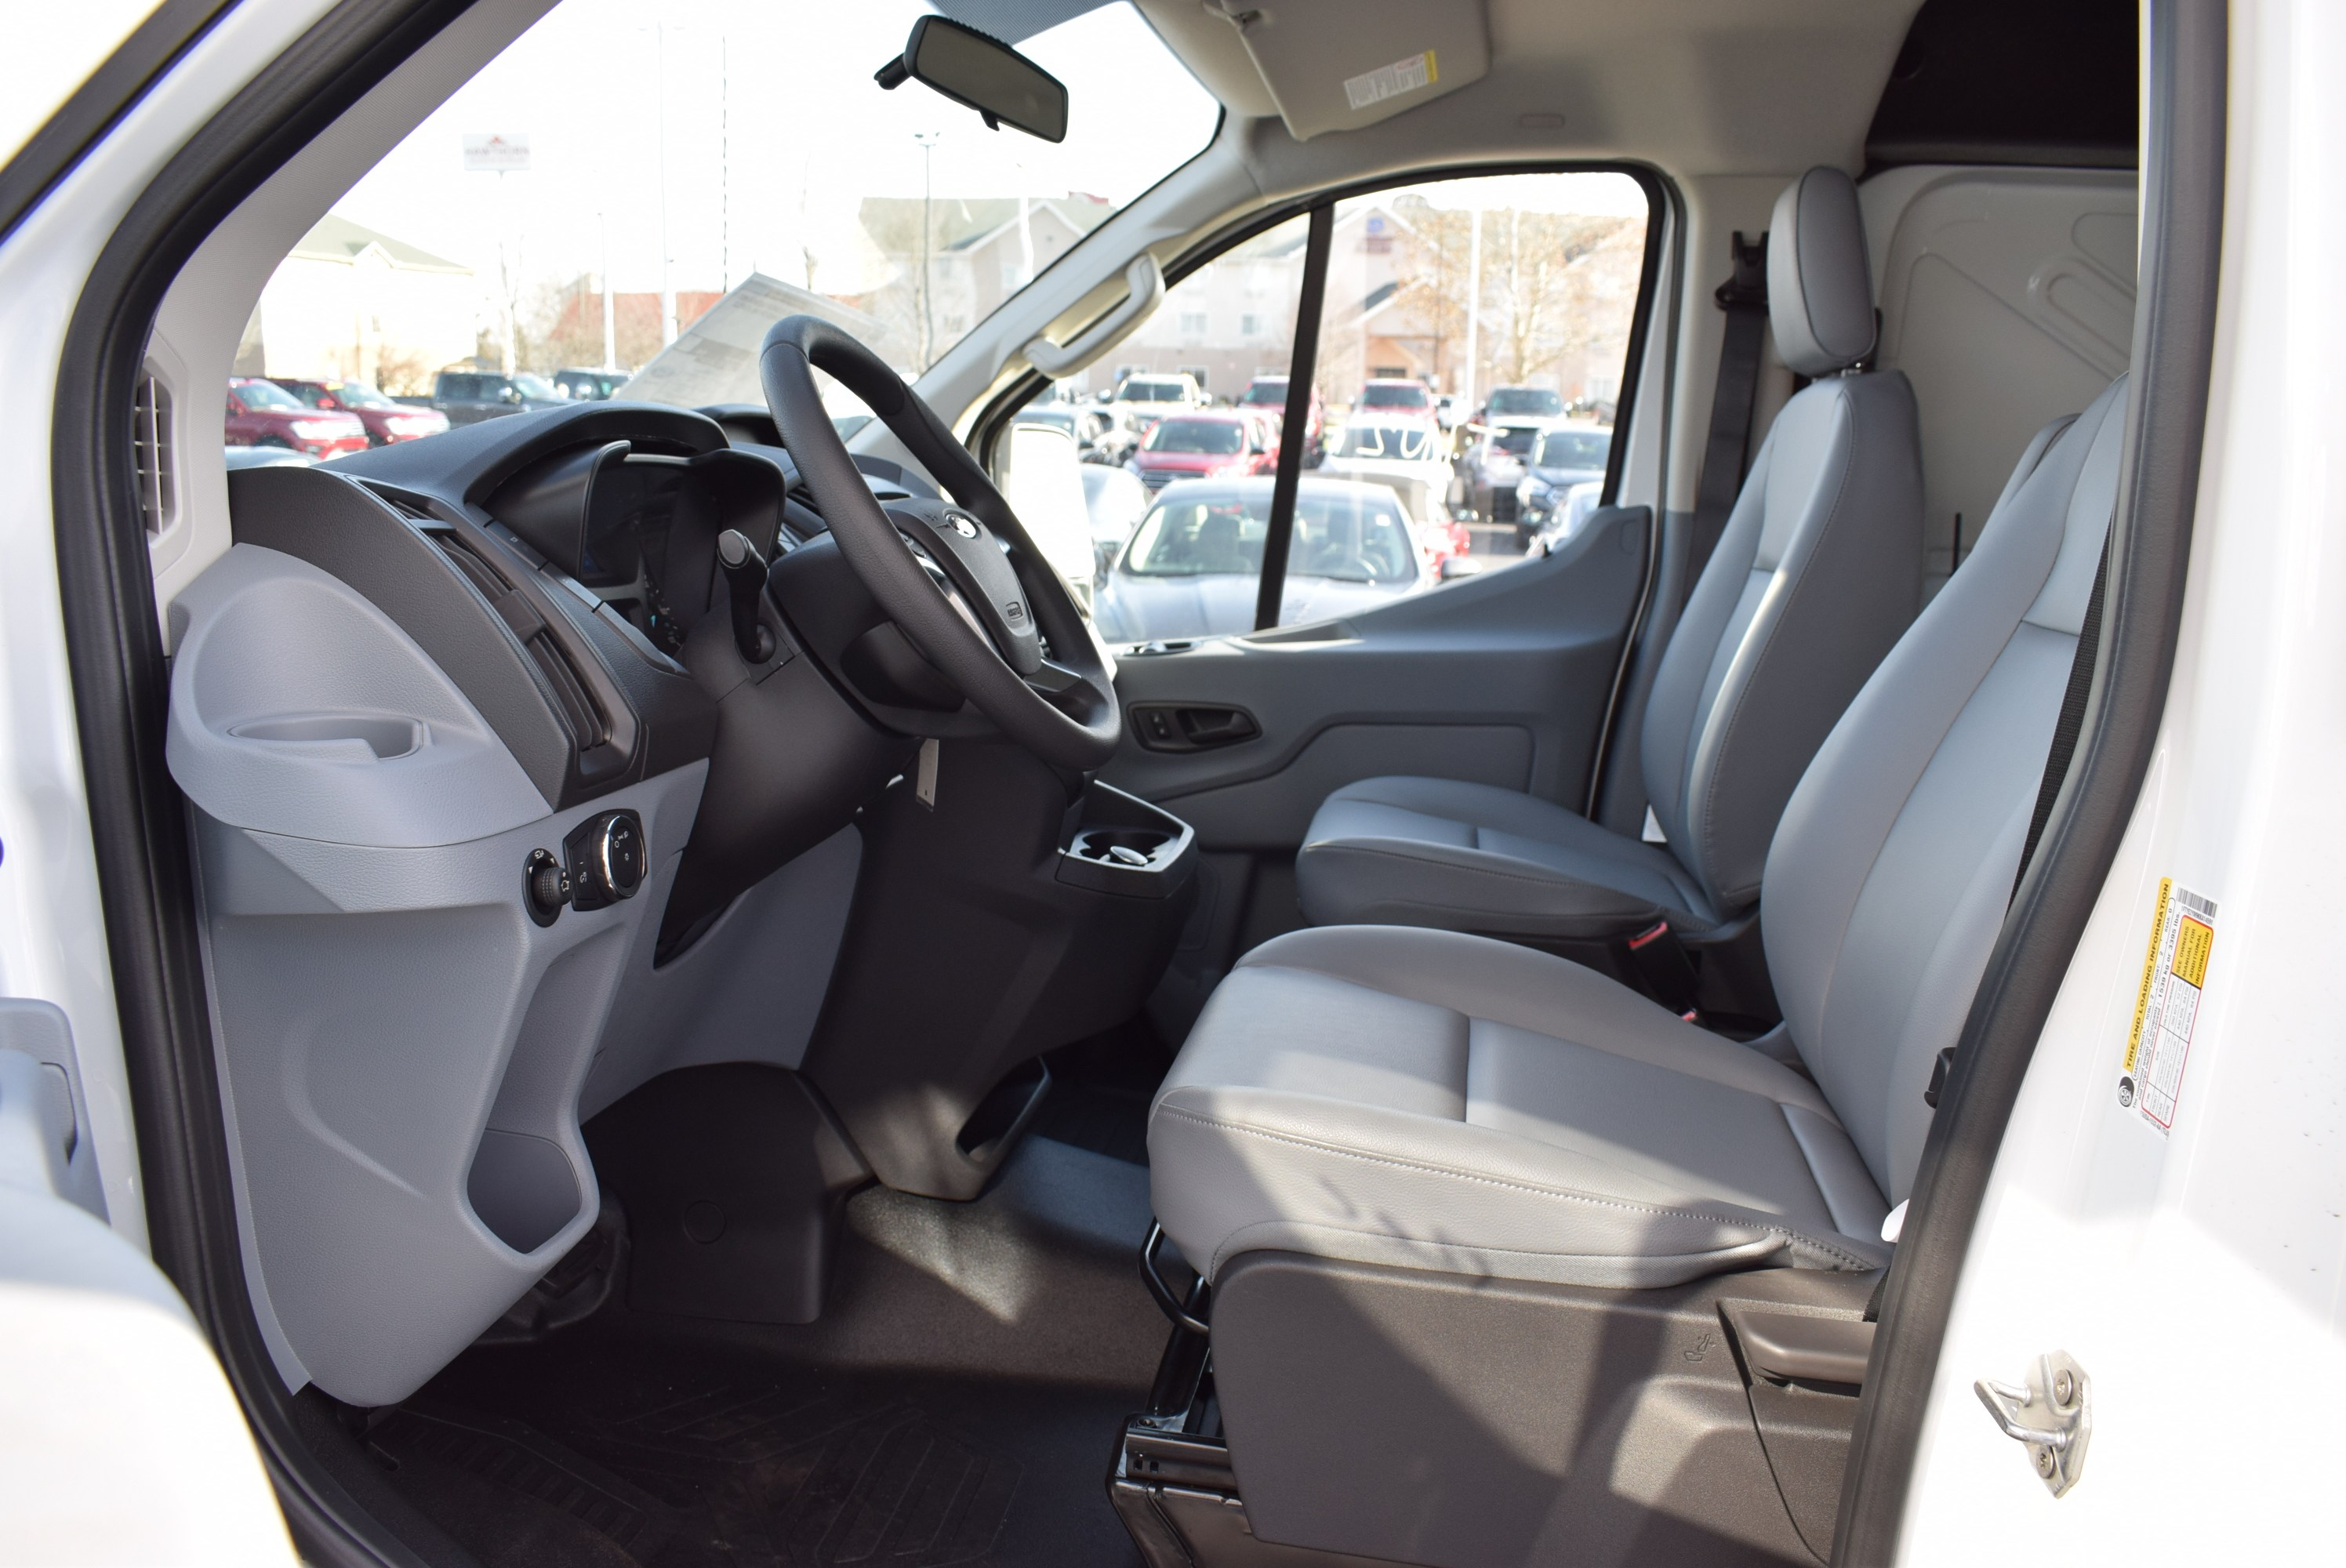 2019 Transit 150 Low Roof 4x2,  Empty Cargo Van #T19054 - photo 17